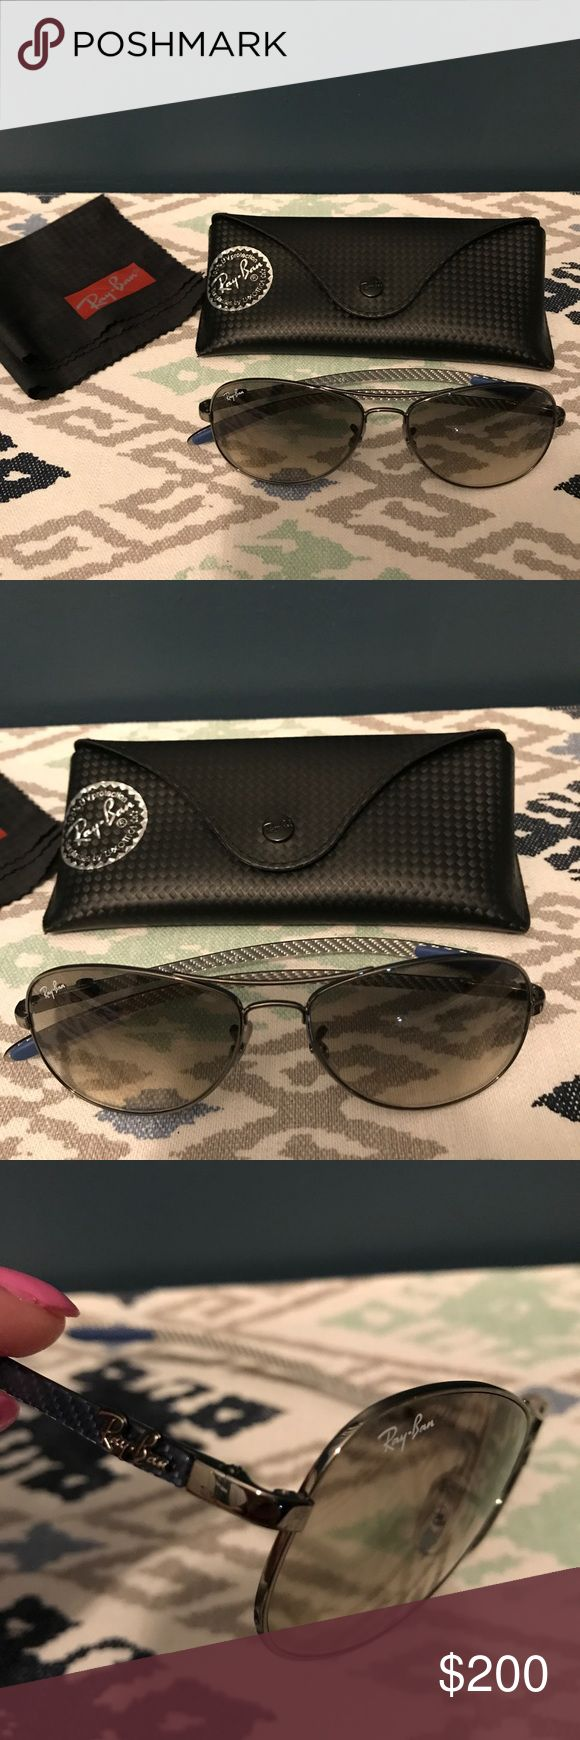 Ray Ban Polarized Carbon Fibre Sunglasses Price Reduced! Ray Ban 8130 56-14 Polarized Aviator Sunglasses! Navy Blue arms! Never worn! Ray-Ban Accessories Sunglasses